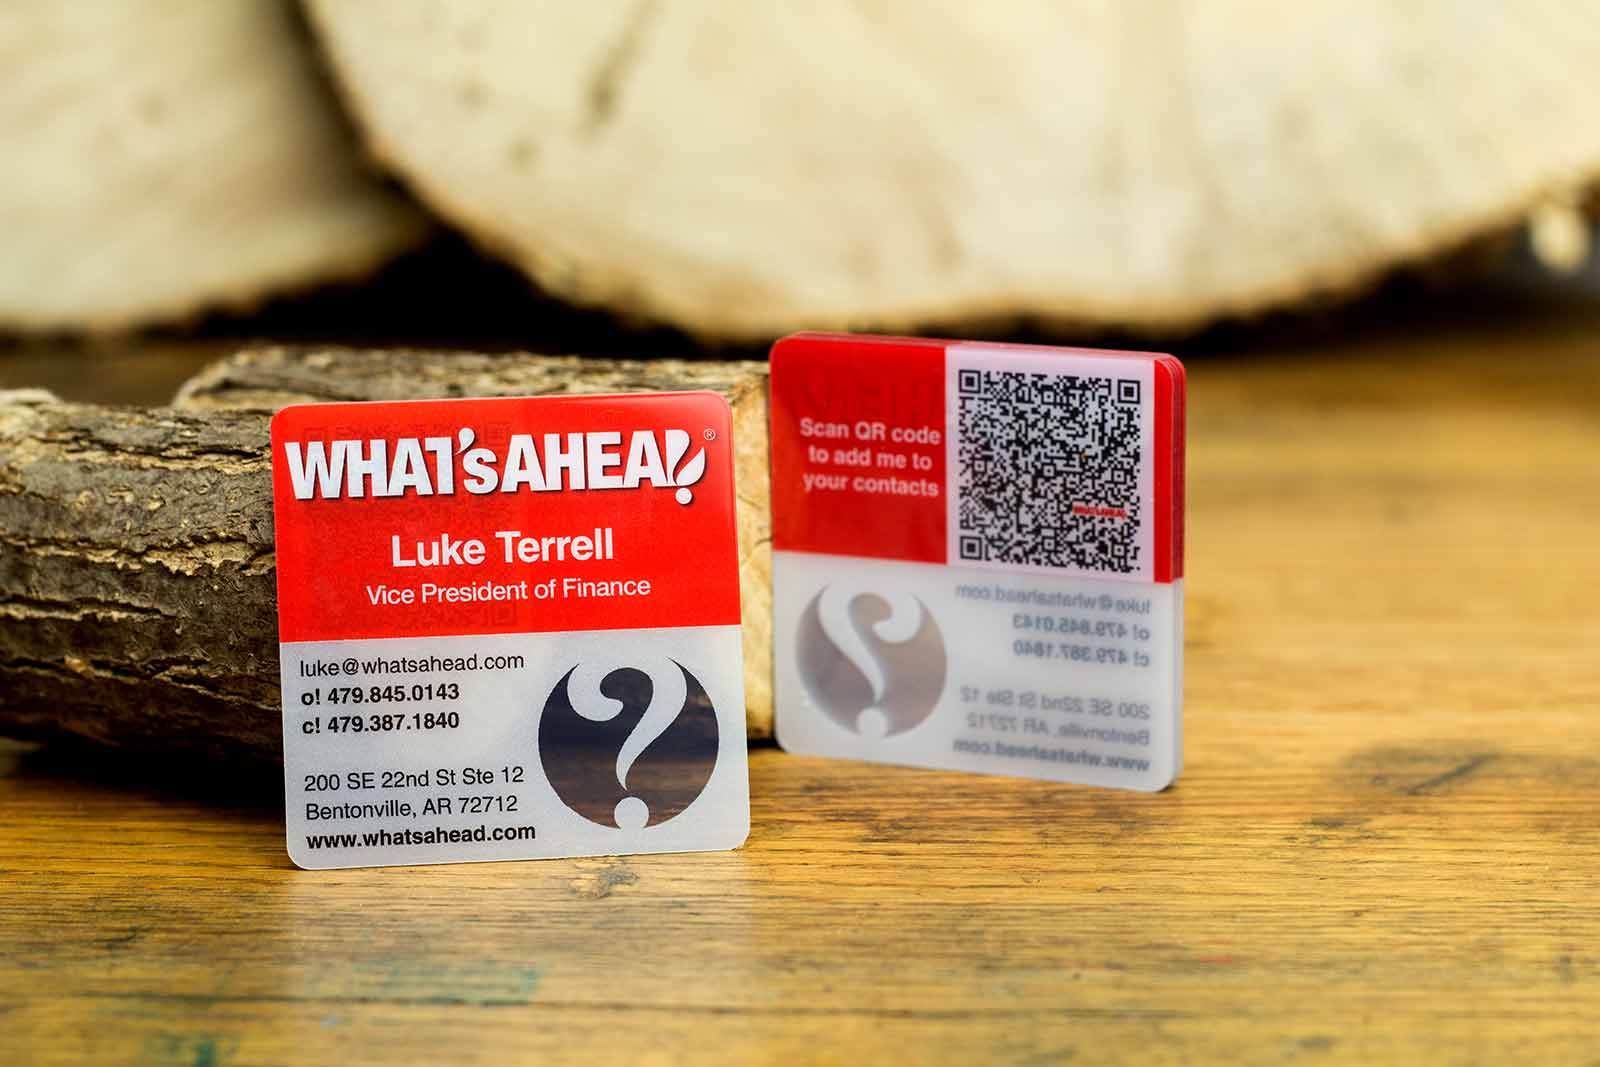 Square business cards are perfect to market your business qr code business cards reheart Image collections